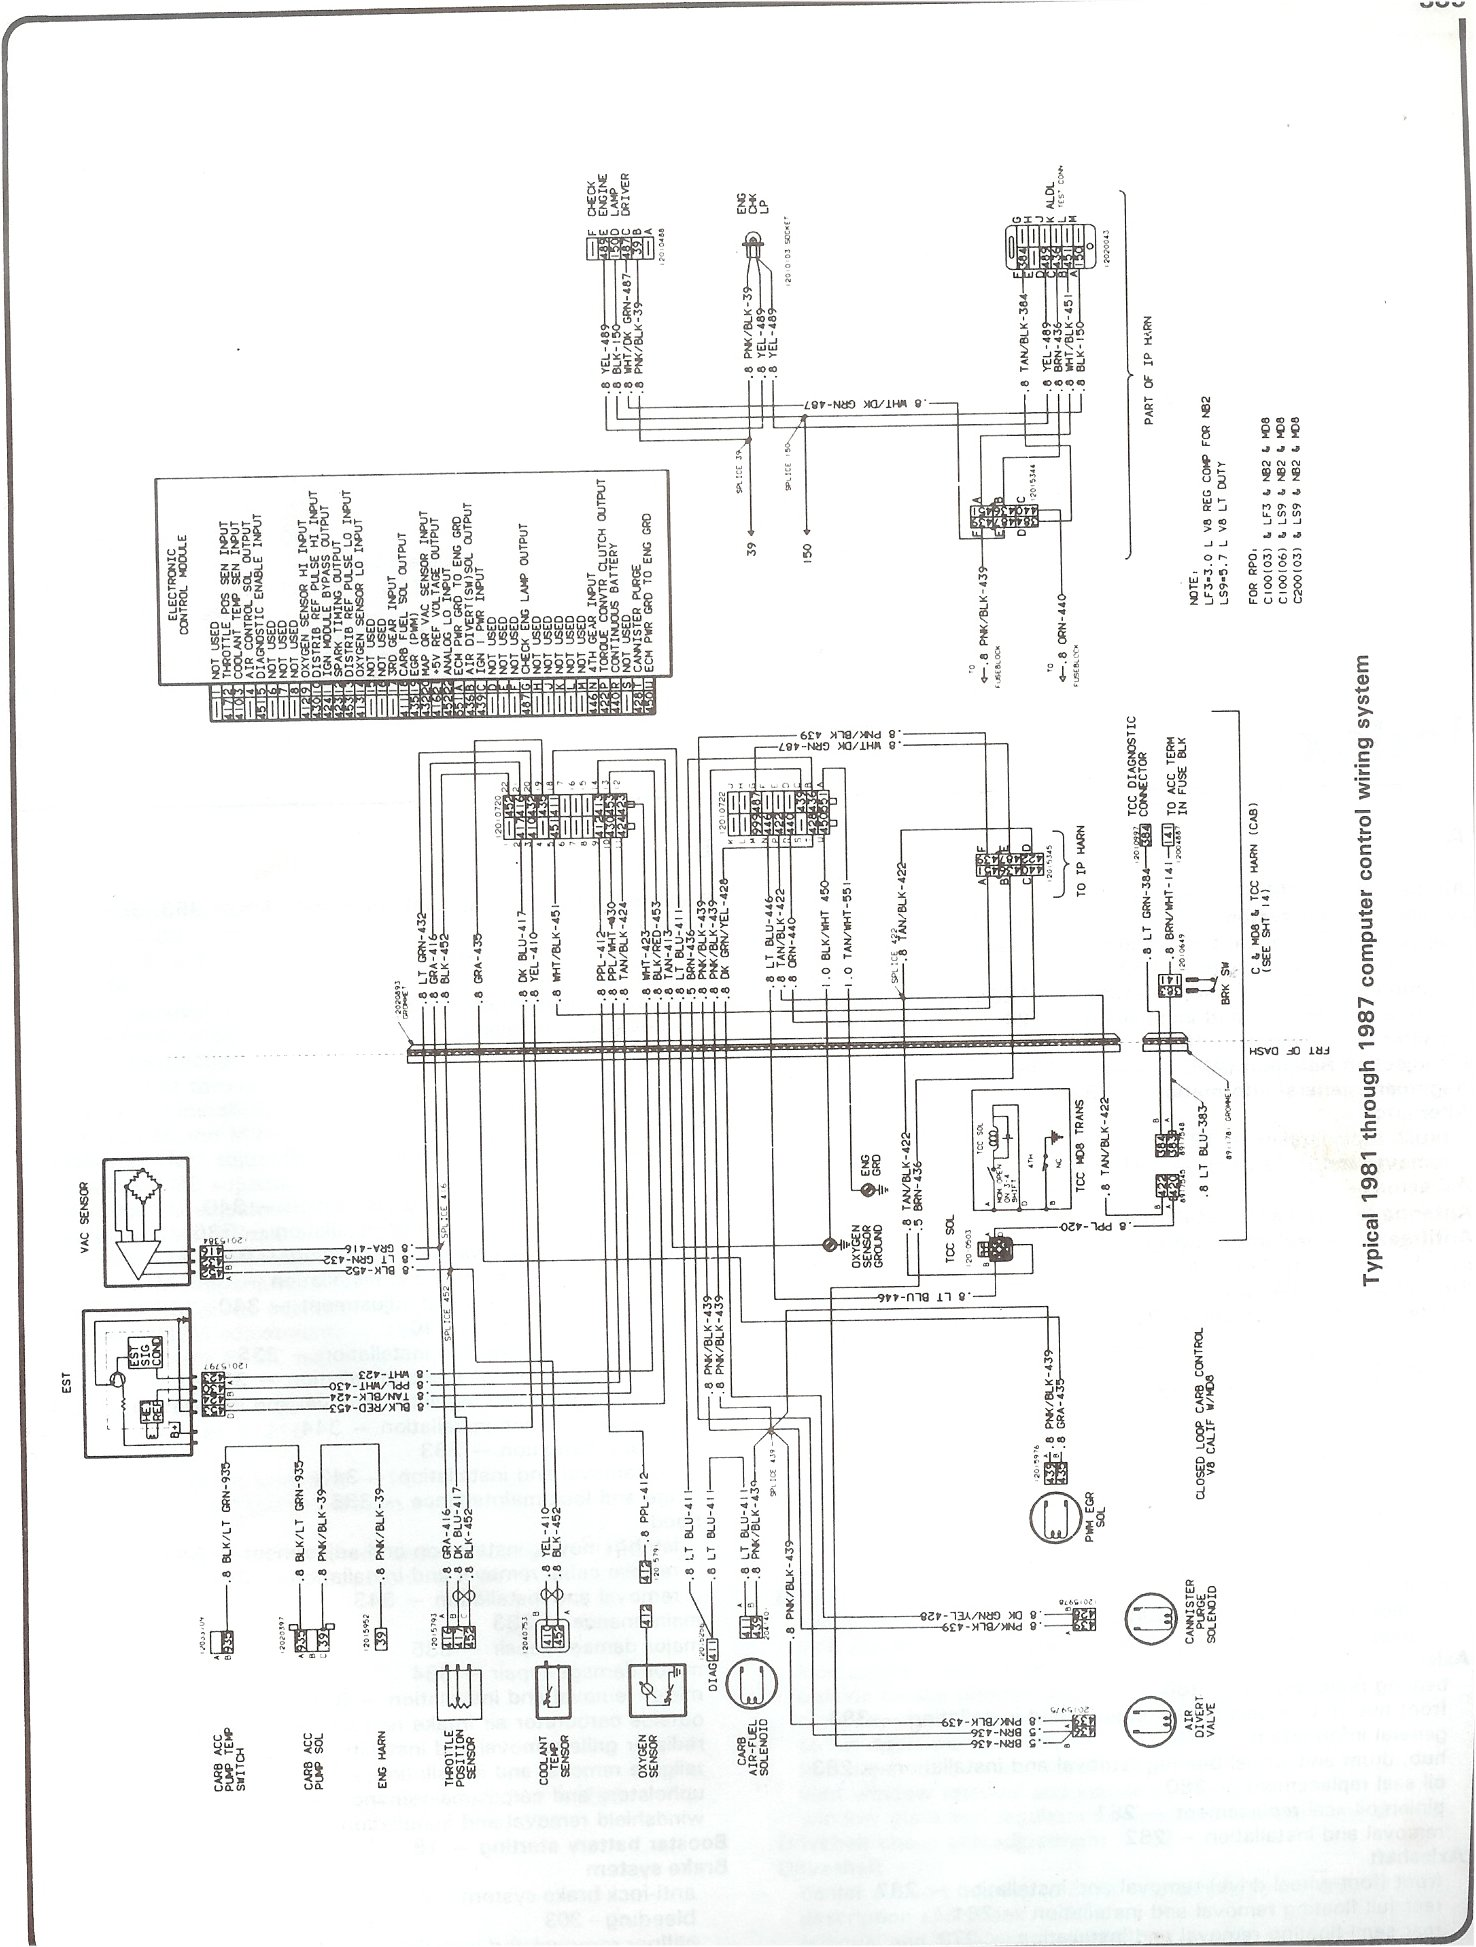 complete 73 87 wiring diagrams rh forum 73 87chevytrucks com 1990 Chevy G30 Van 1988 Chevy Truck Wiring Diagrams